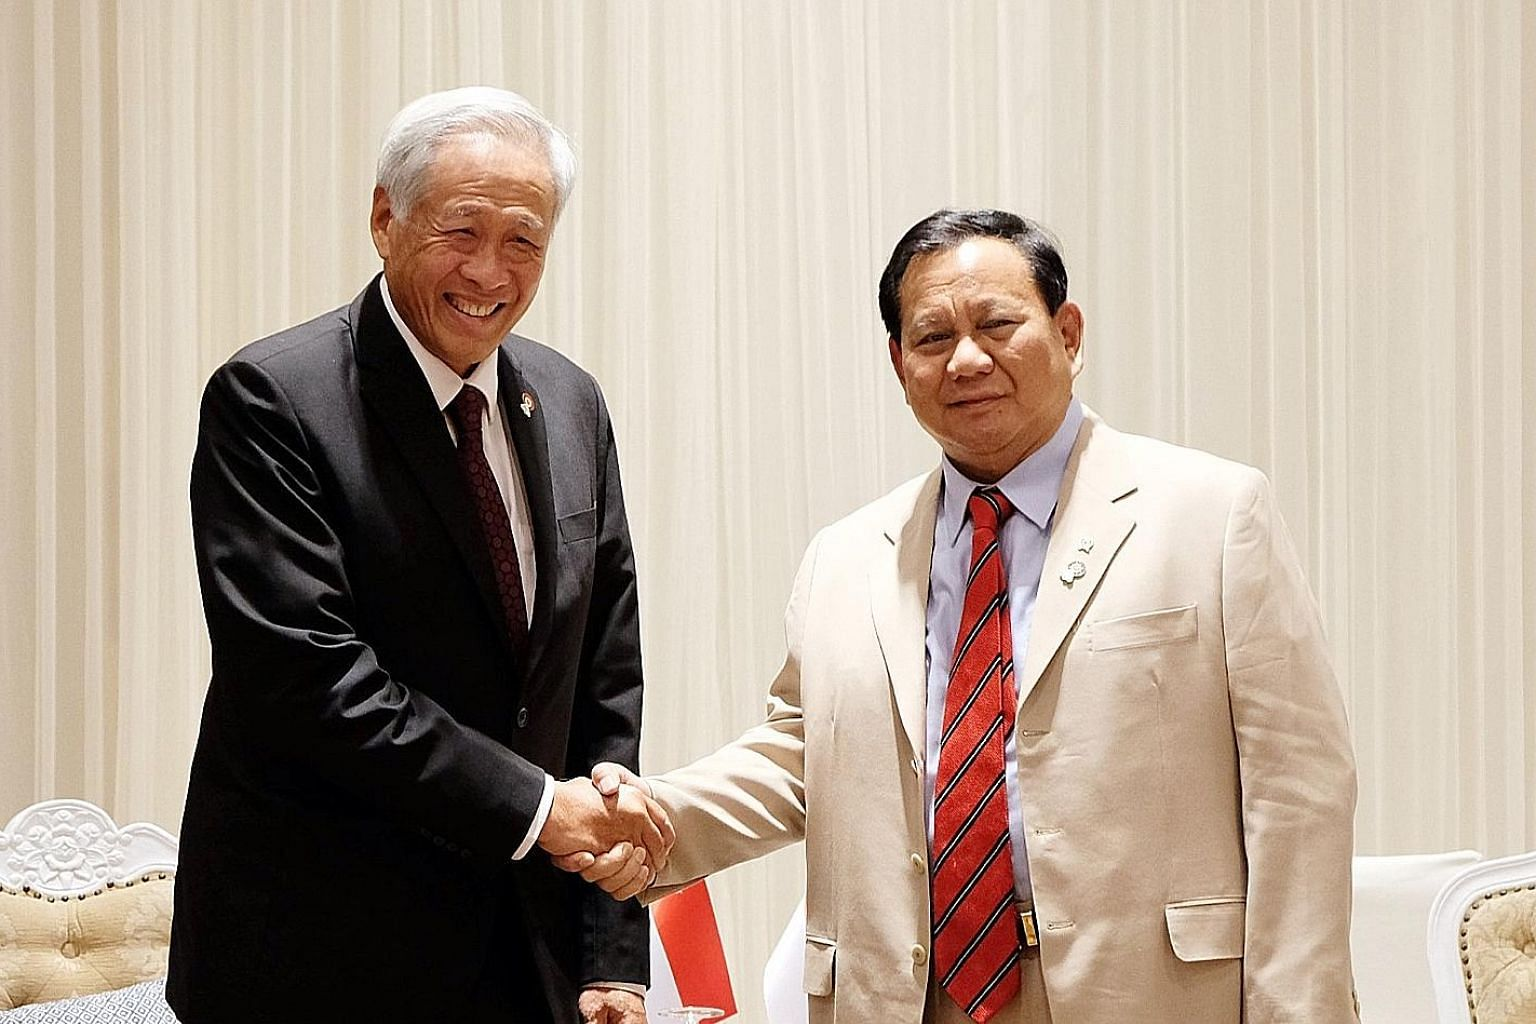 Defence Minister Ng Eng Hen meeting his Indonesian counterpart Prabowo Subianto on Sunday at the ADMM Retreat.